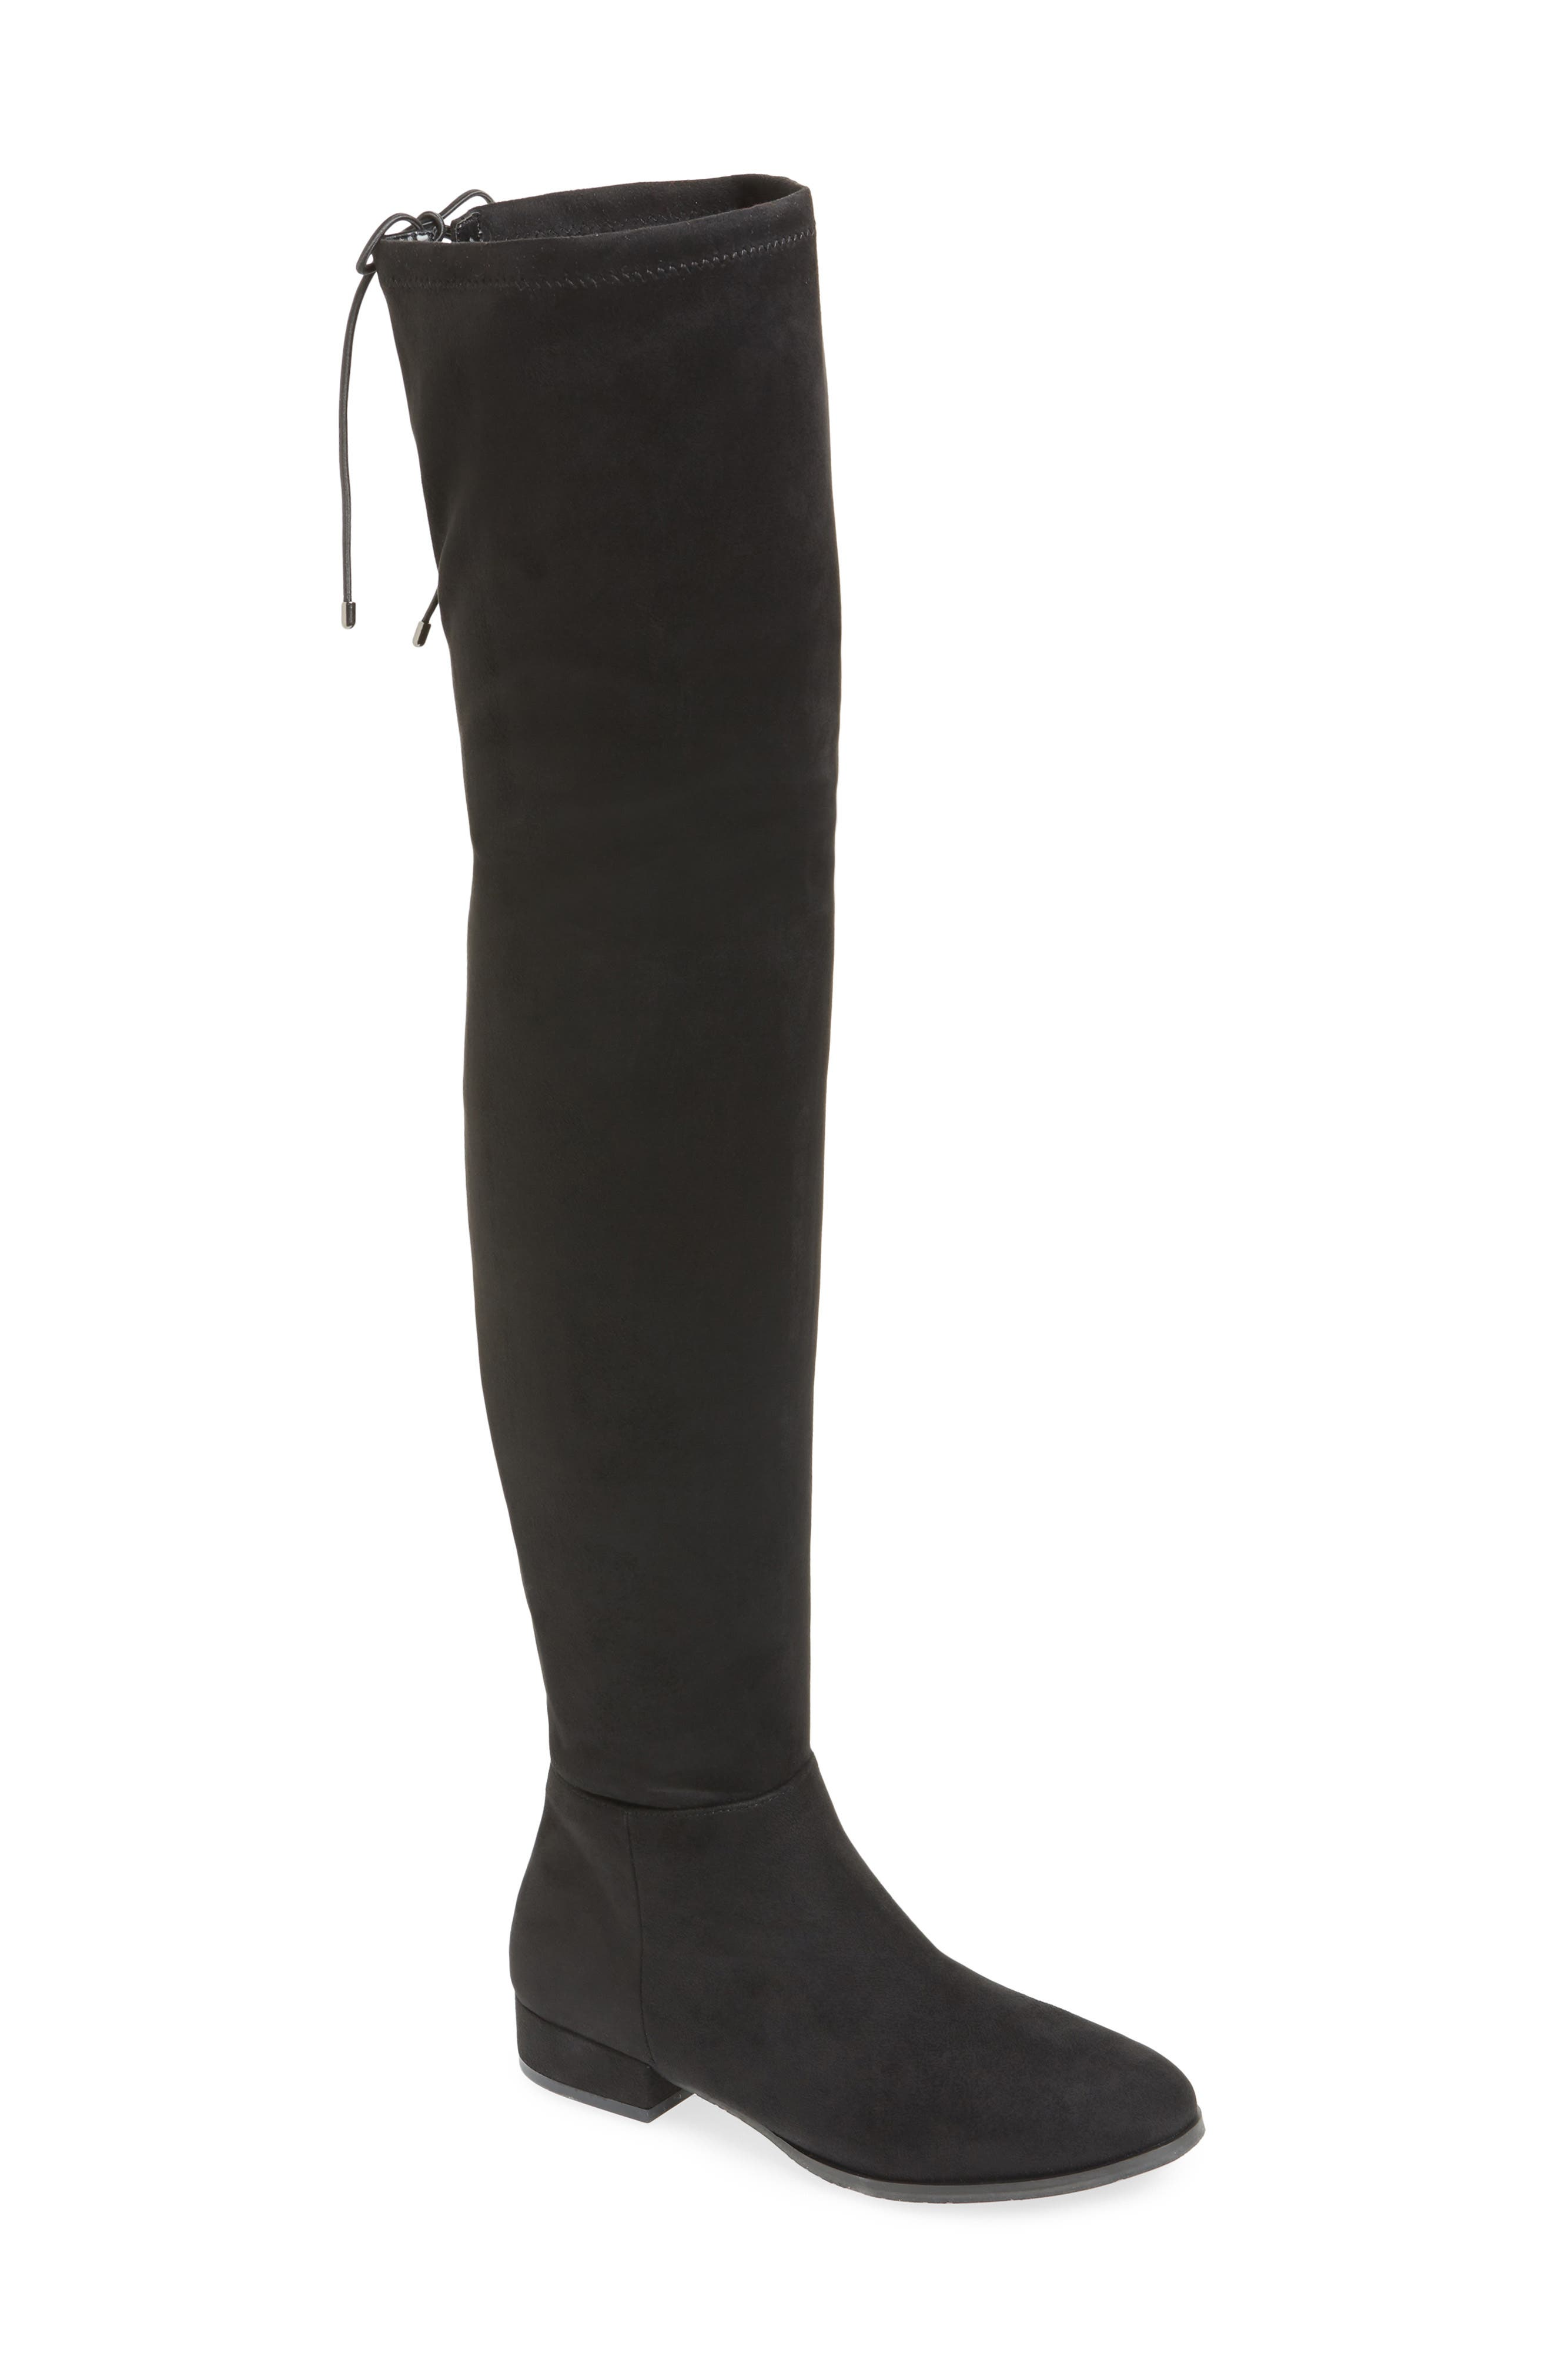 CHINESE LAUNDRY Richie Knee High Boot, Main, color, 001